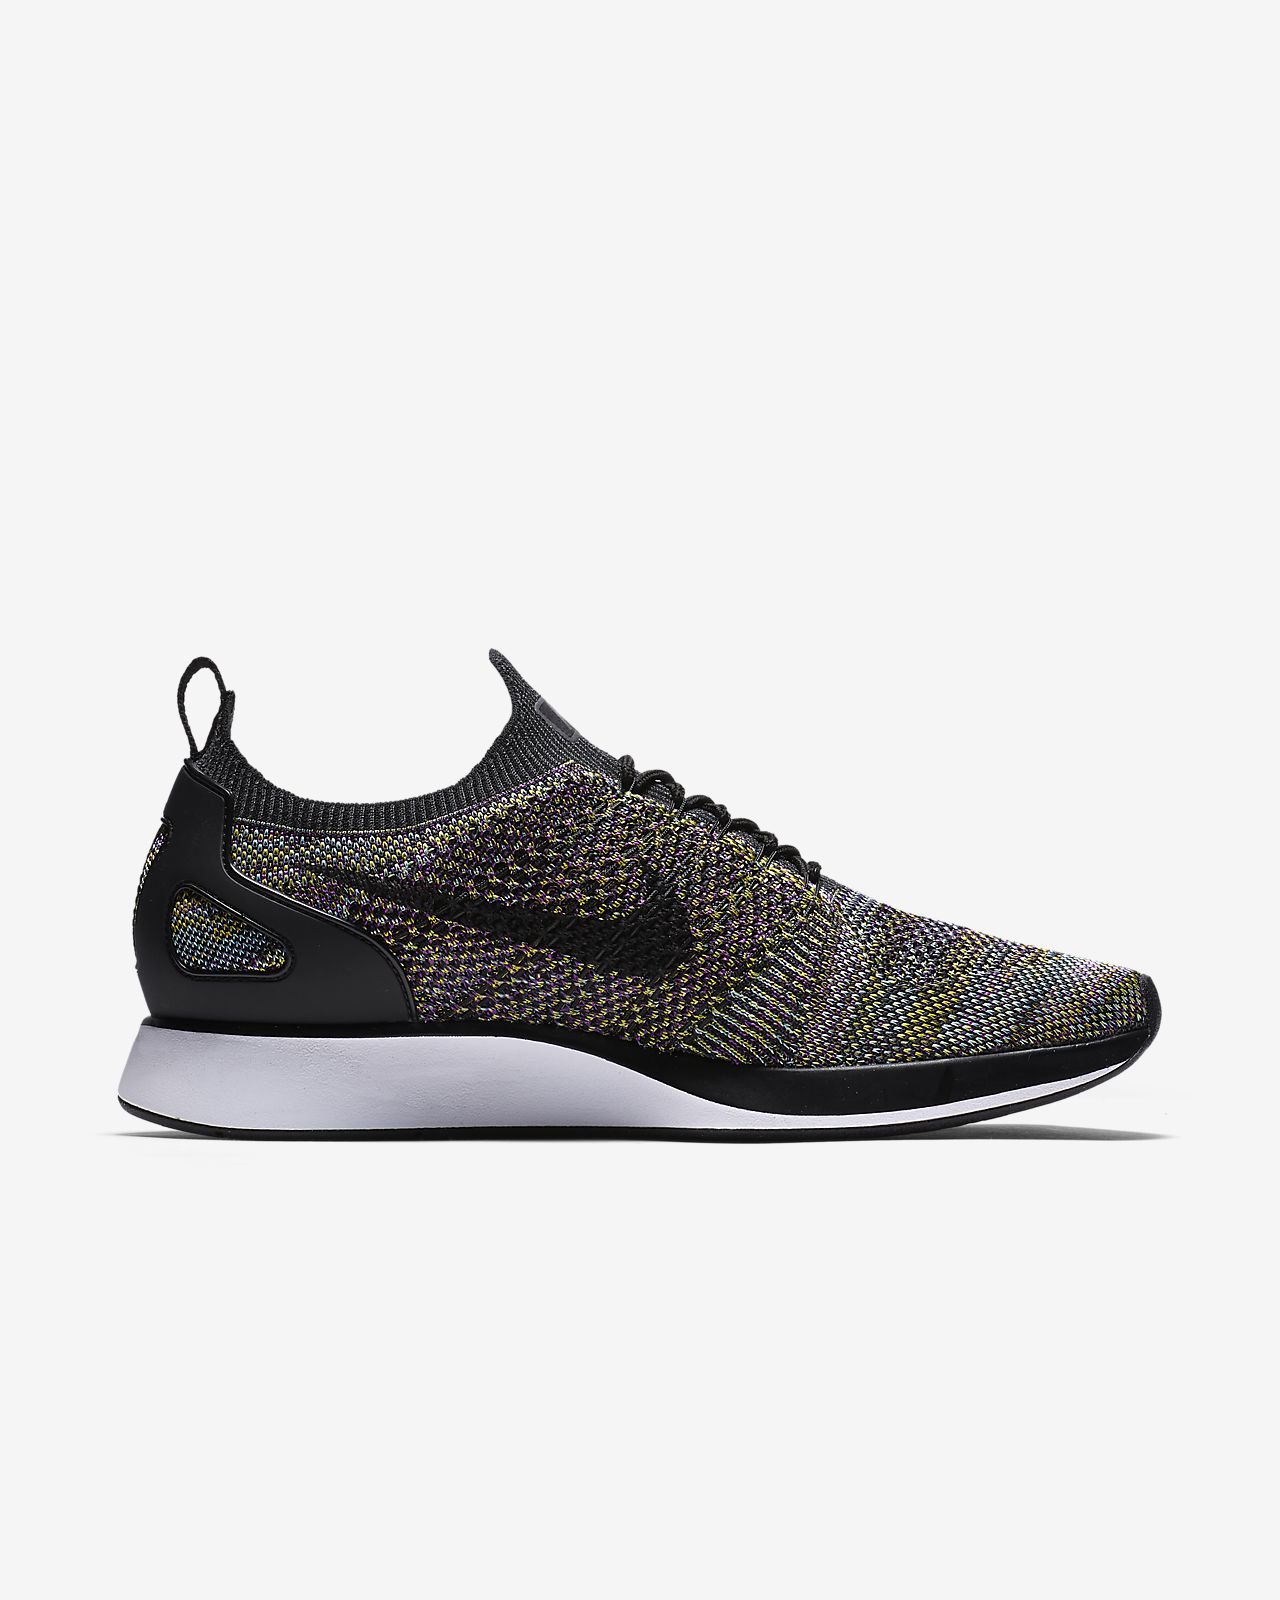 918264001 Nike Air Zoom Mariah Flyknit Racer Casual Shoes Super Deals